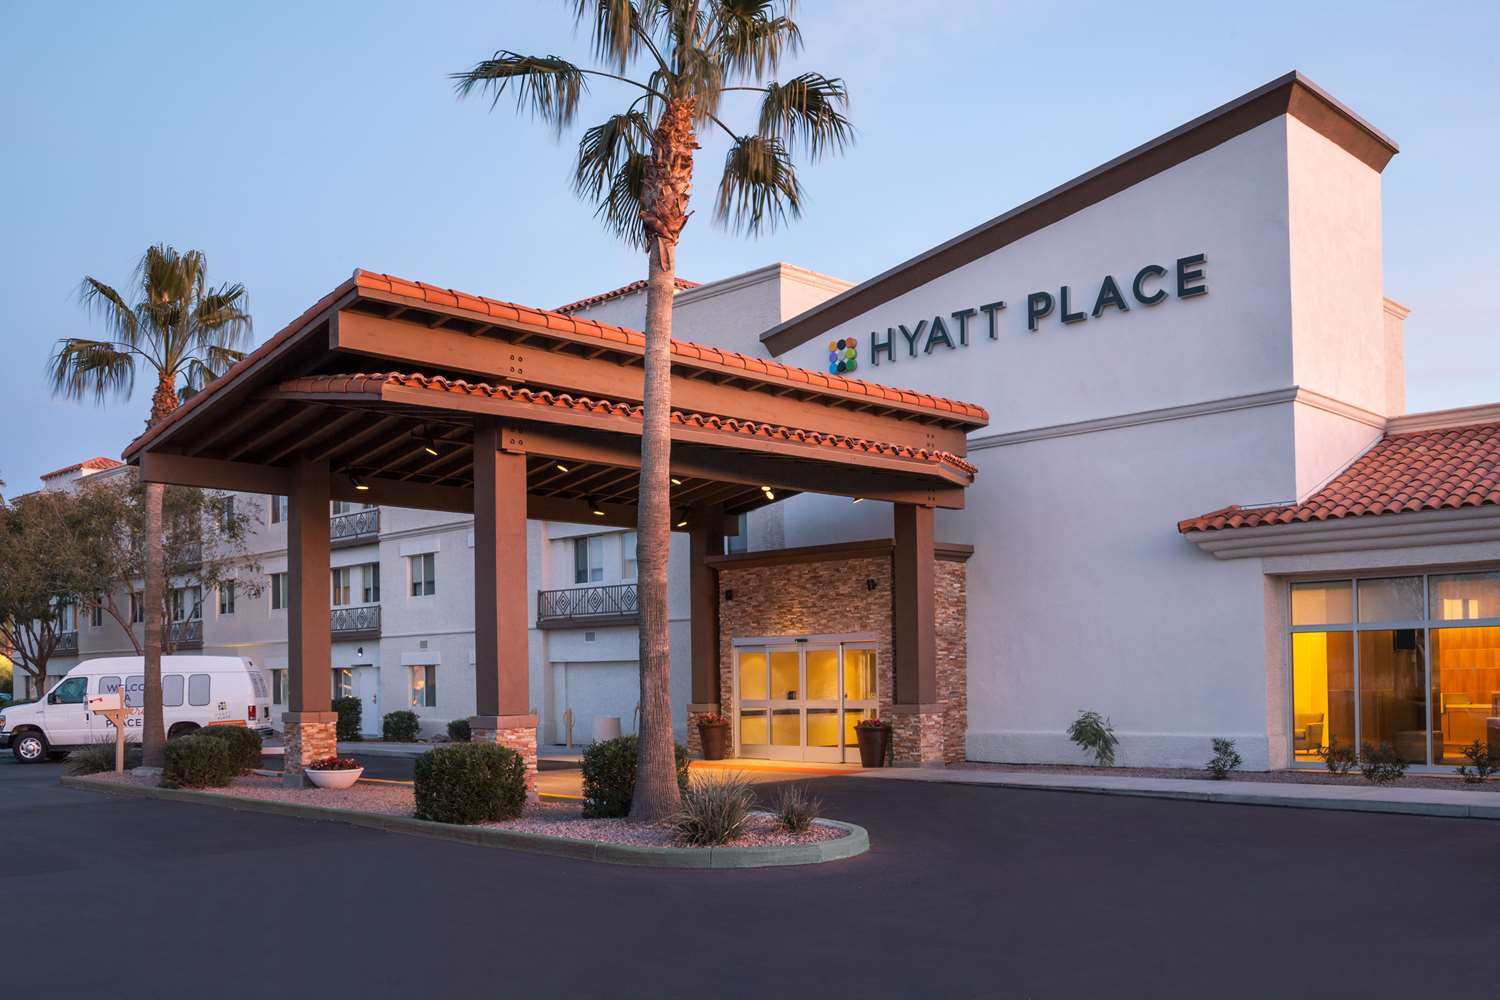 Hyatt Place Phoenix Chandler